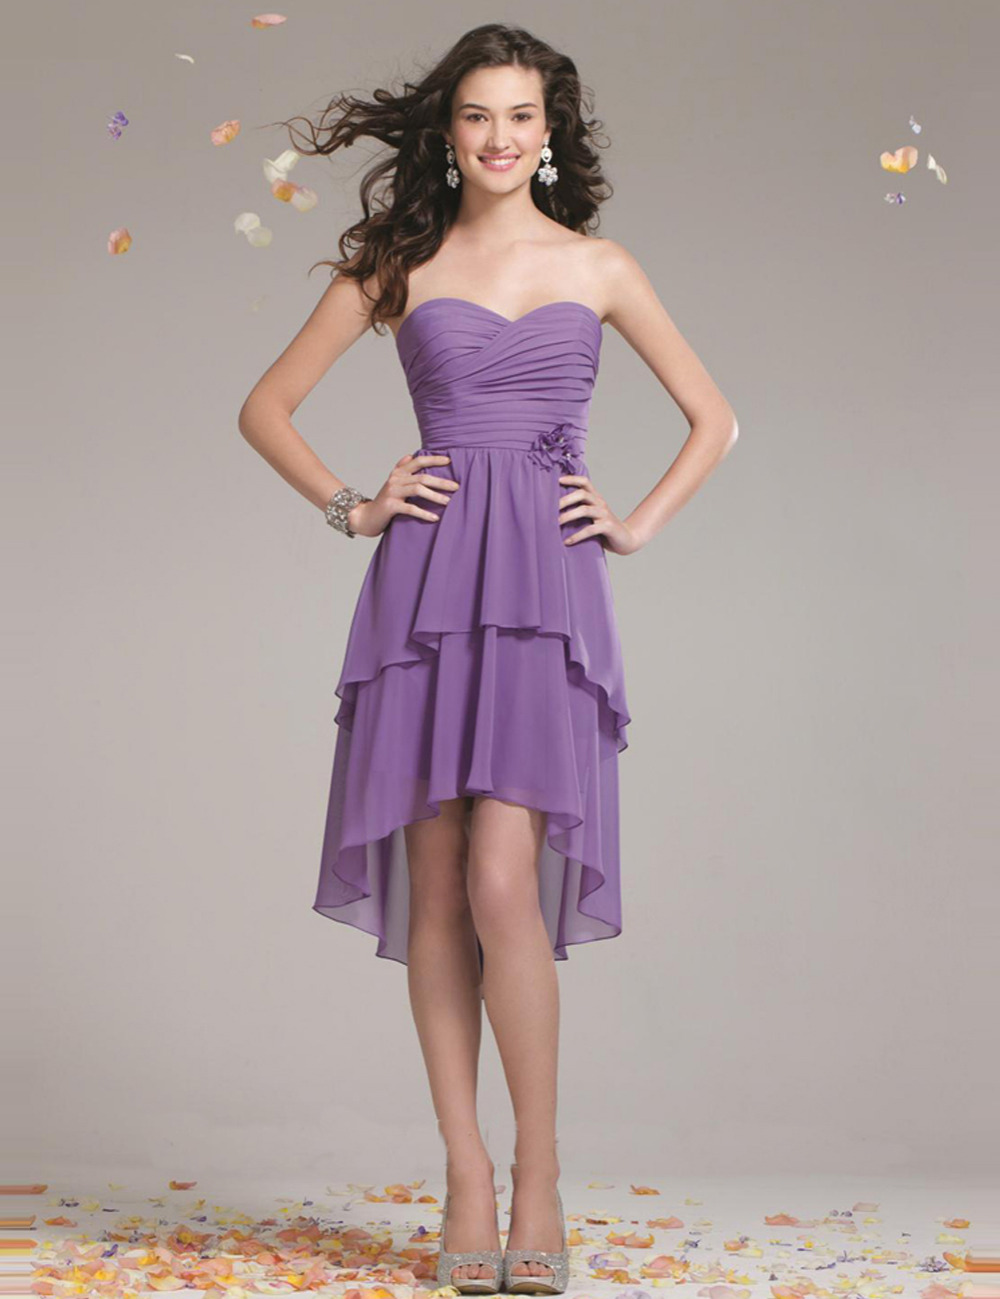 Short purple bridesmaids dresses gallery braidsmaid dress online get cheap purple high low bridesmaid dress aliexpress short purple bridesmaid dresses with flower sweetheart ombrellifo Image collections